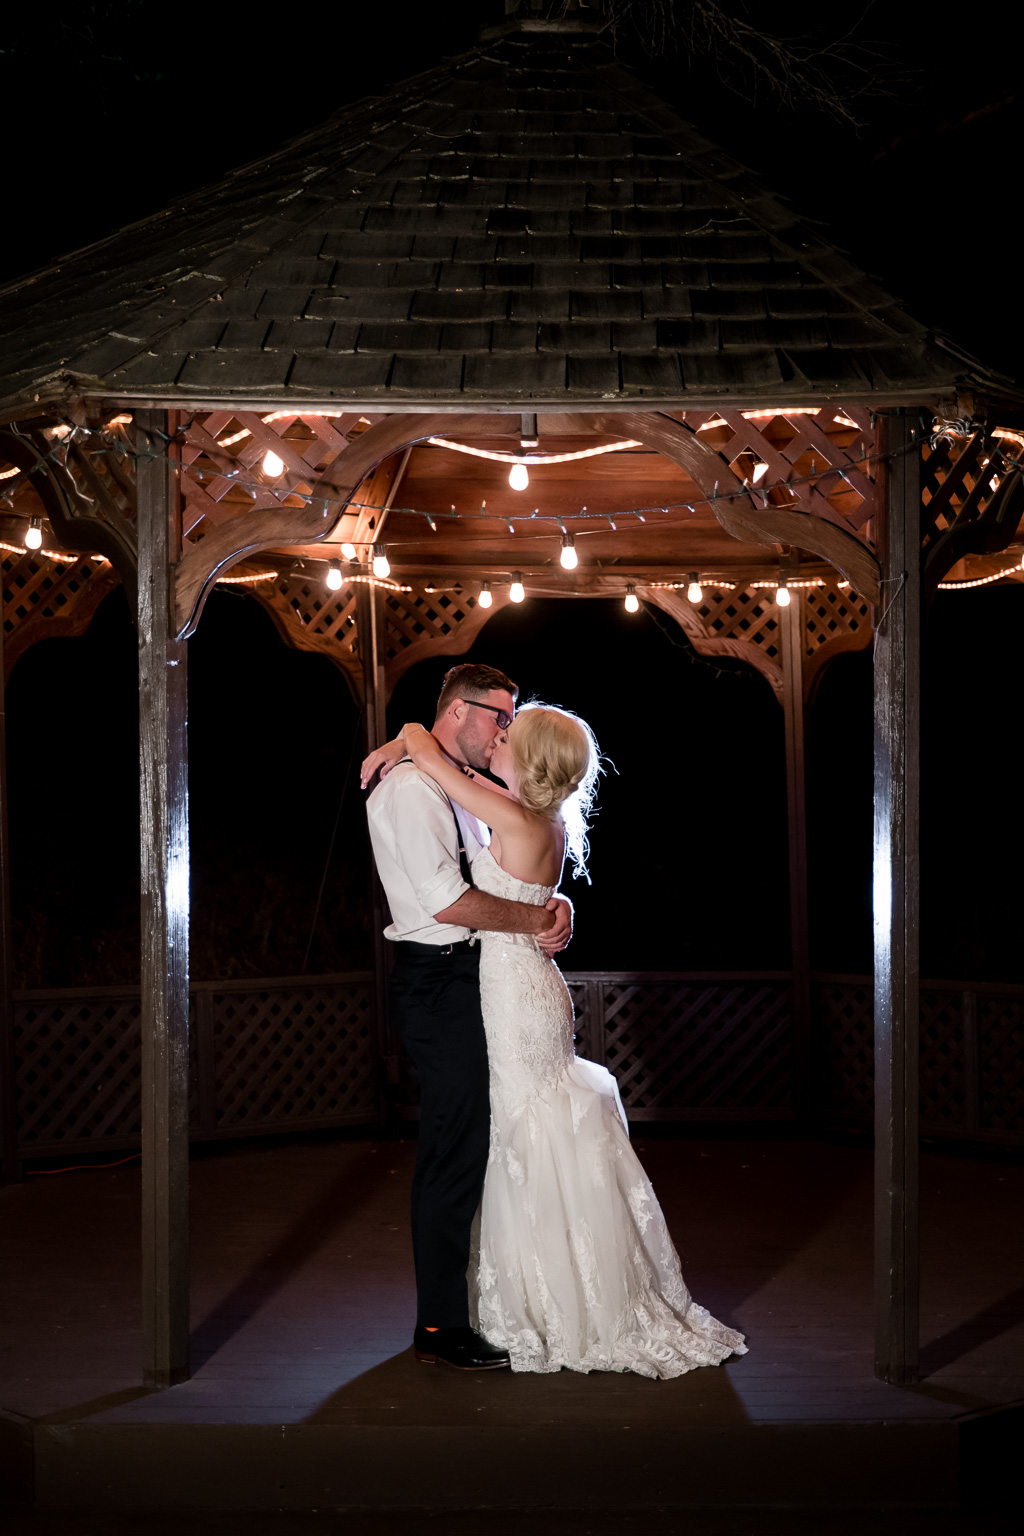 a night photo under the gazebo